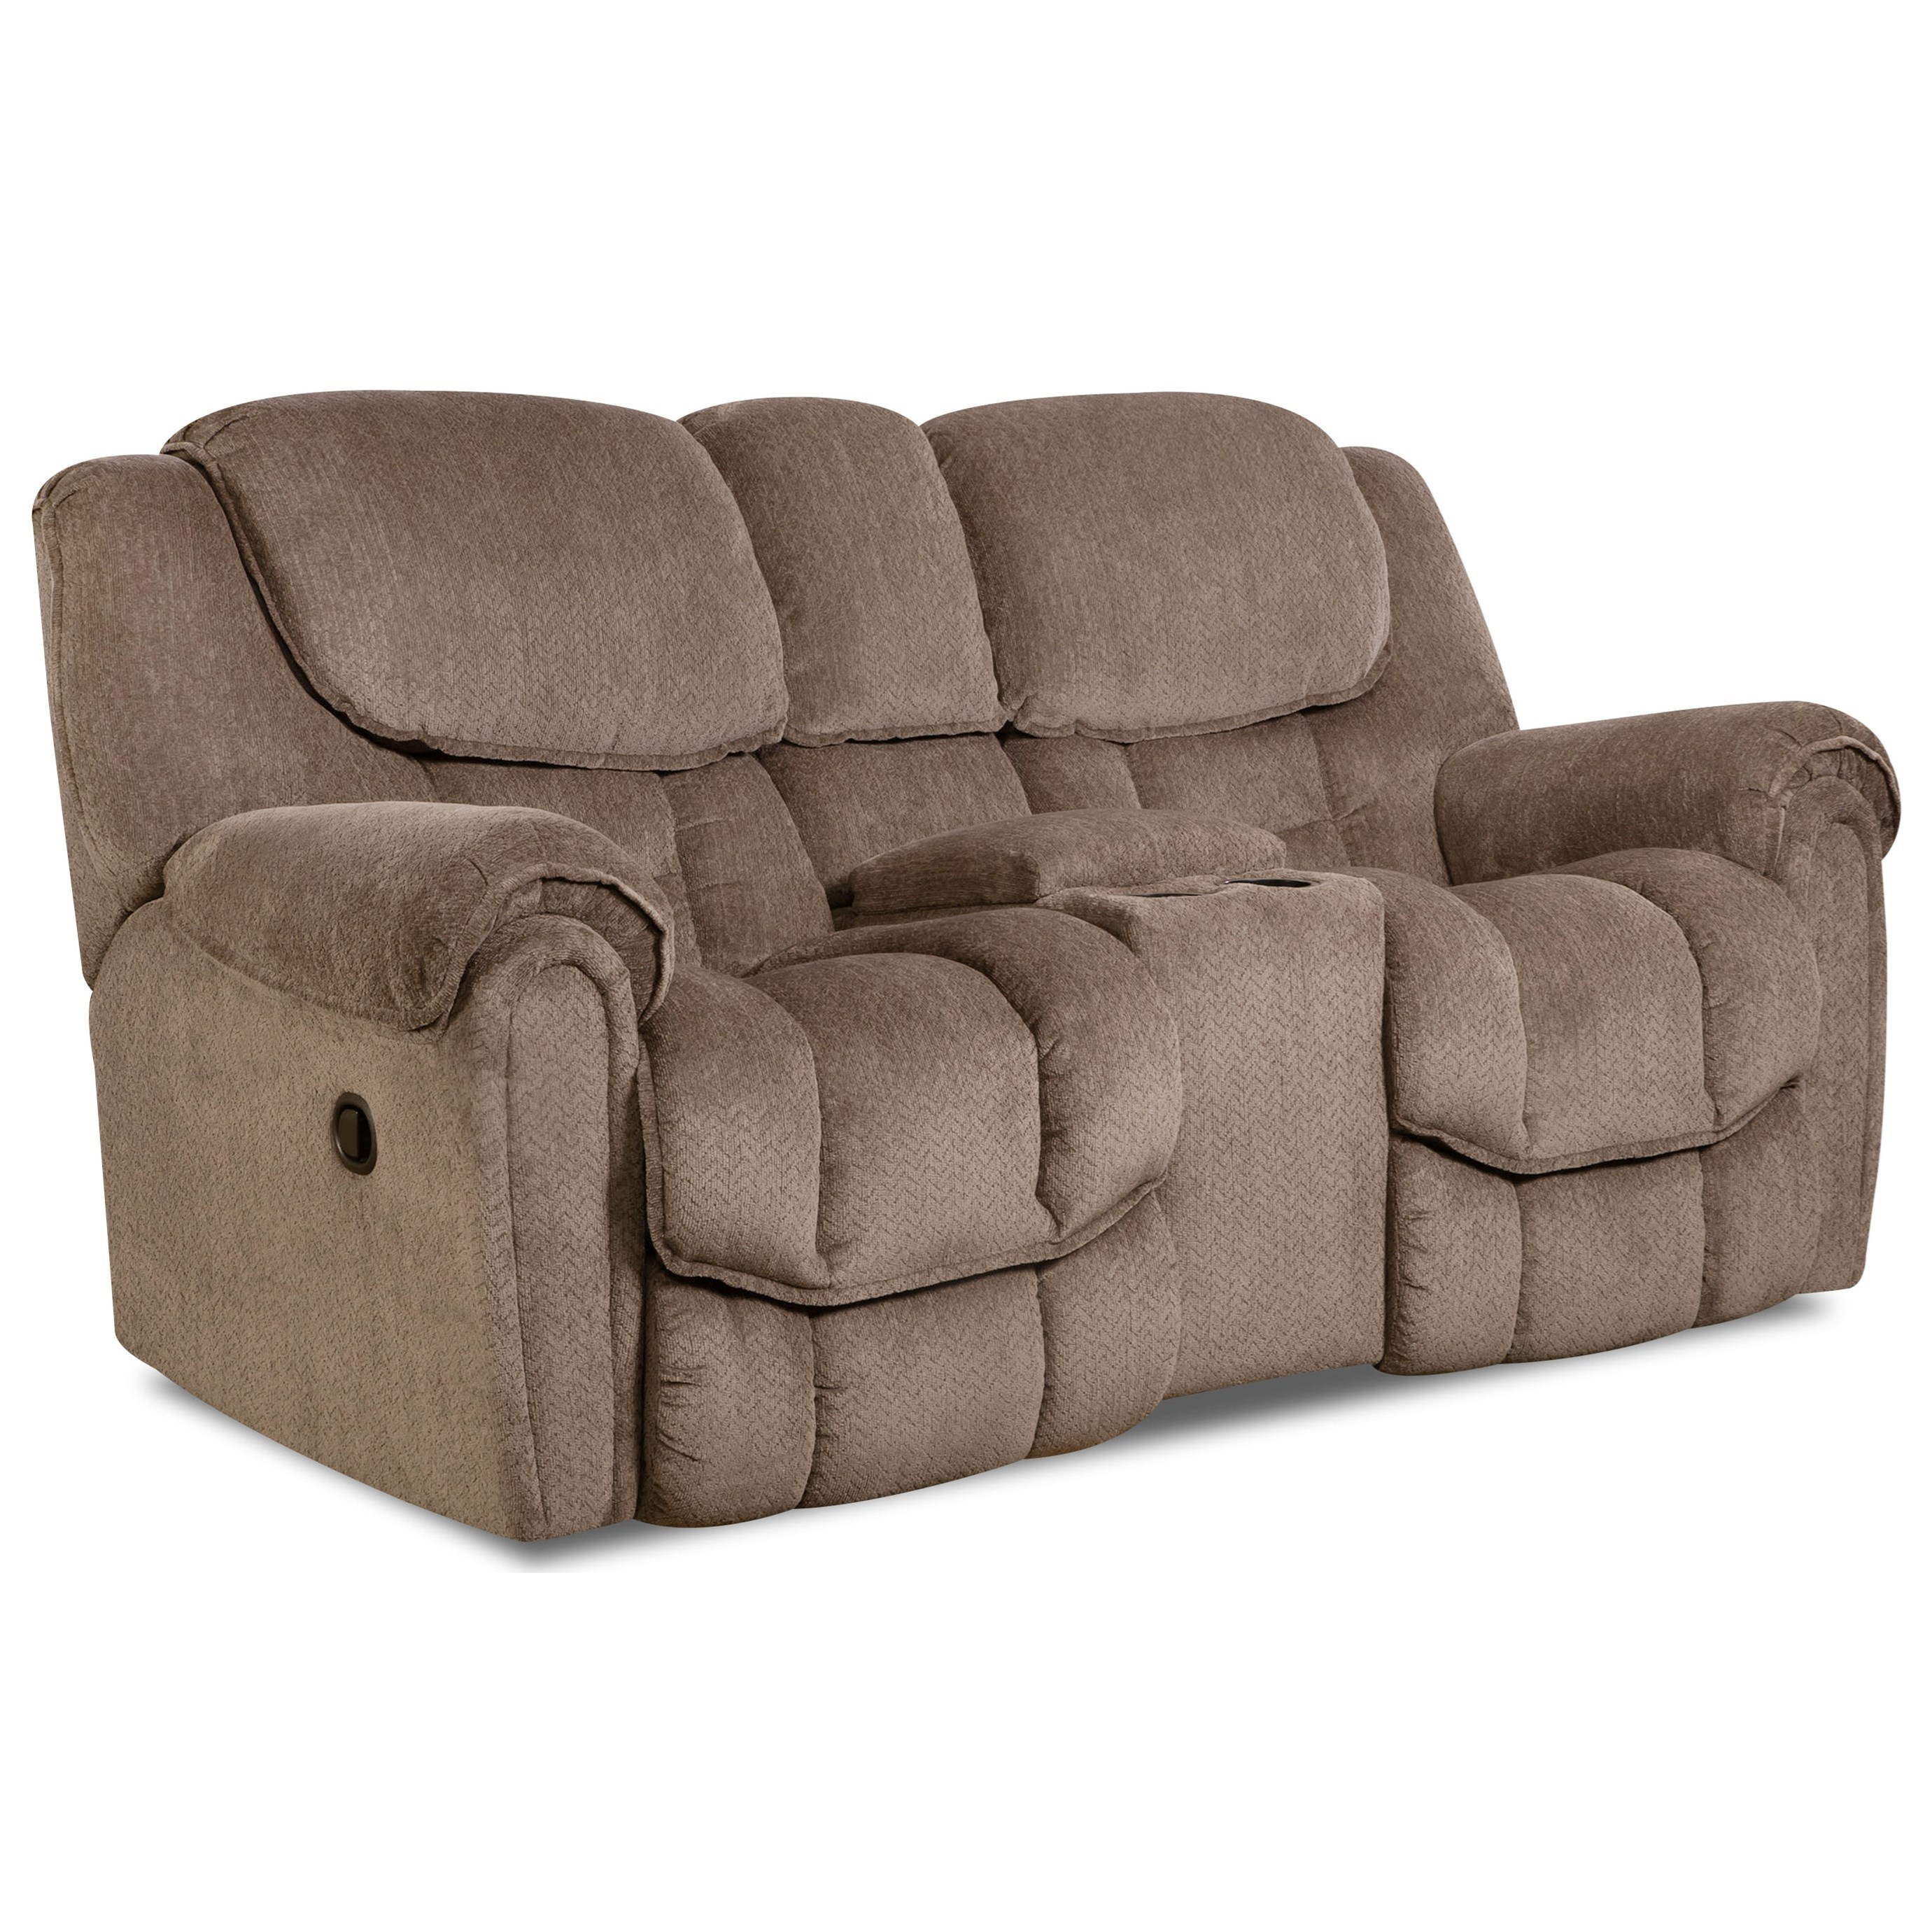 122 Rocking Console Reclining Loveseat by HomeStretch at O'Dunk & O'Bright Furniture